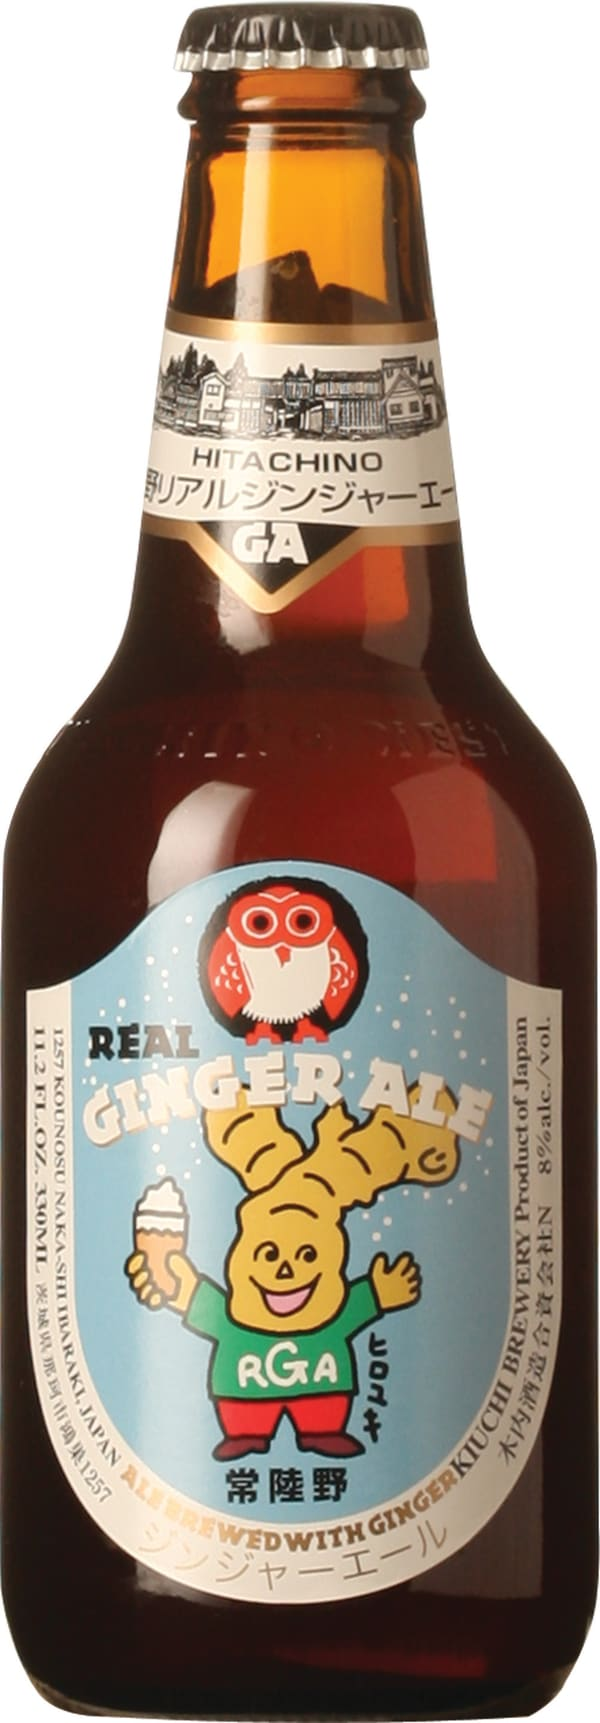 Hitachino Nest Ginger Ale